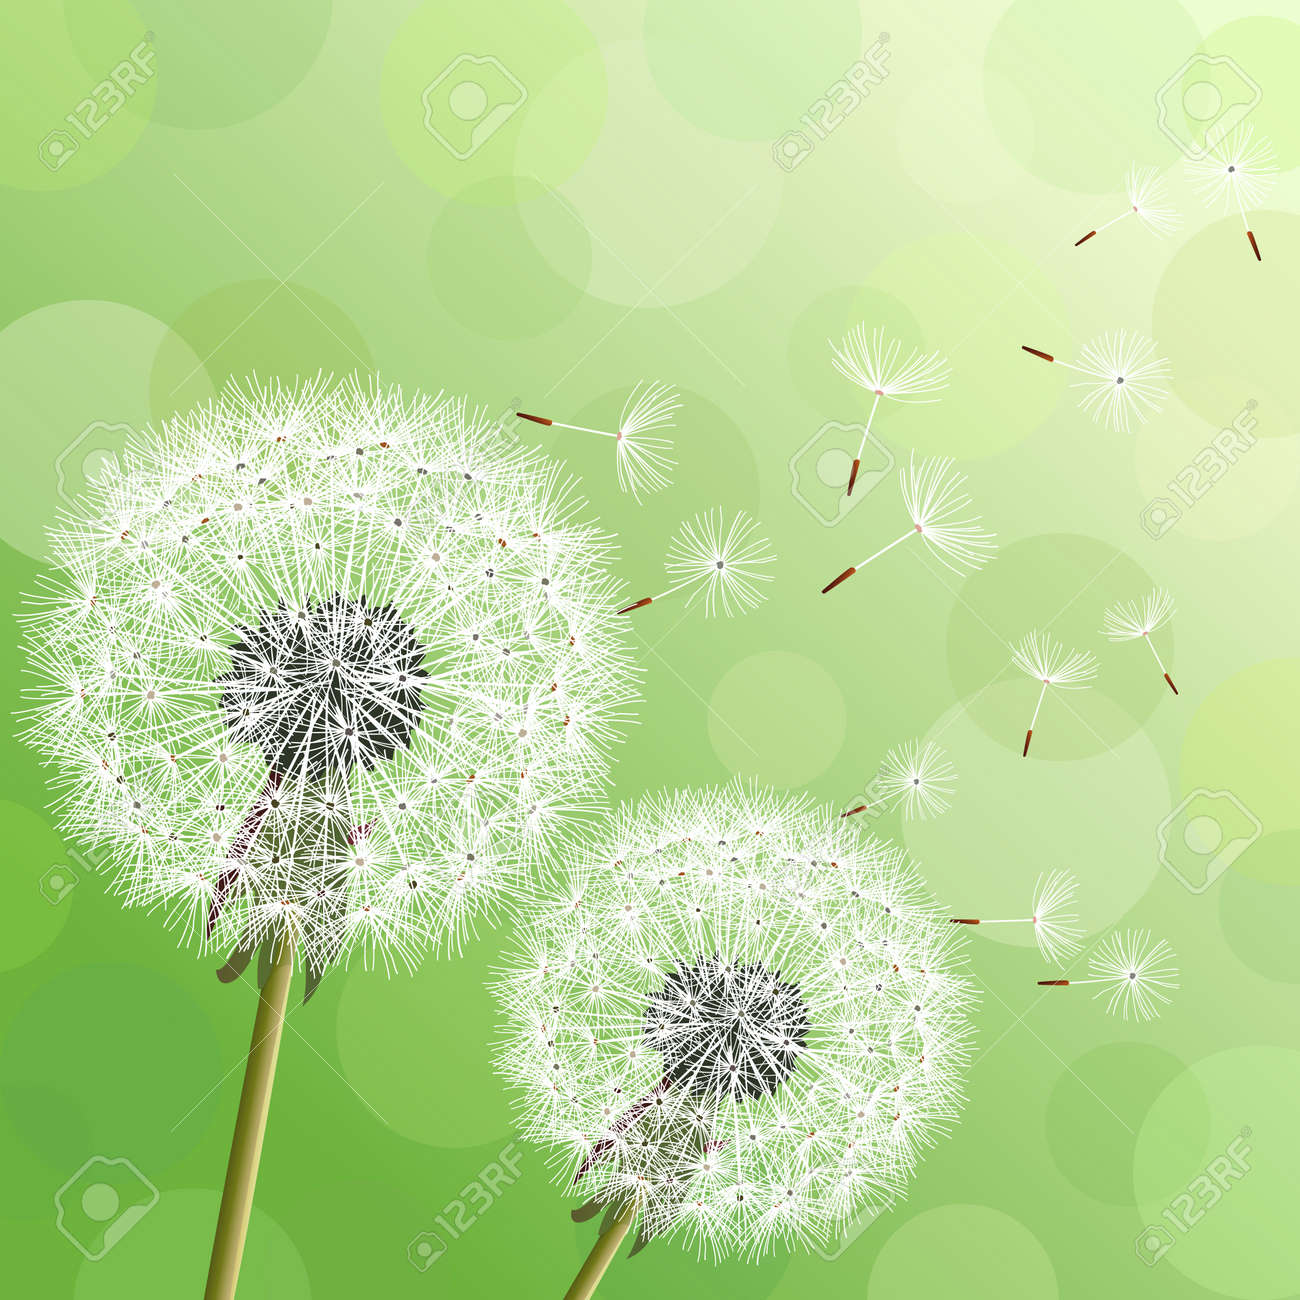 Floral 6x8 FT Backdrop Photographers,Cute Dandelion Flowers Nature Environment Fuzz Organic Fluff Artsy Illustration Background for Party Home Decor Outdoorsy Theme Vinyl Shoot Props Black White